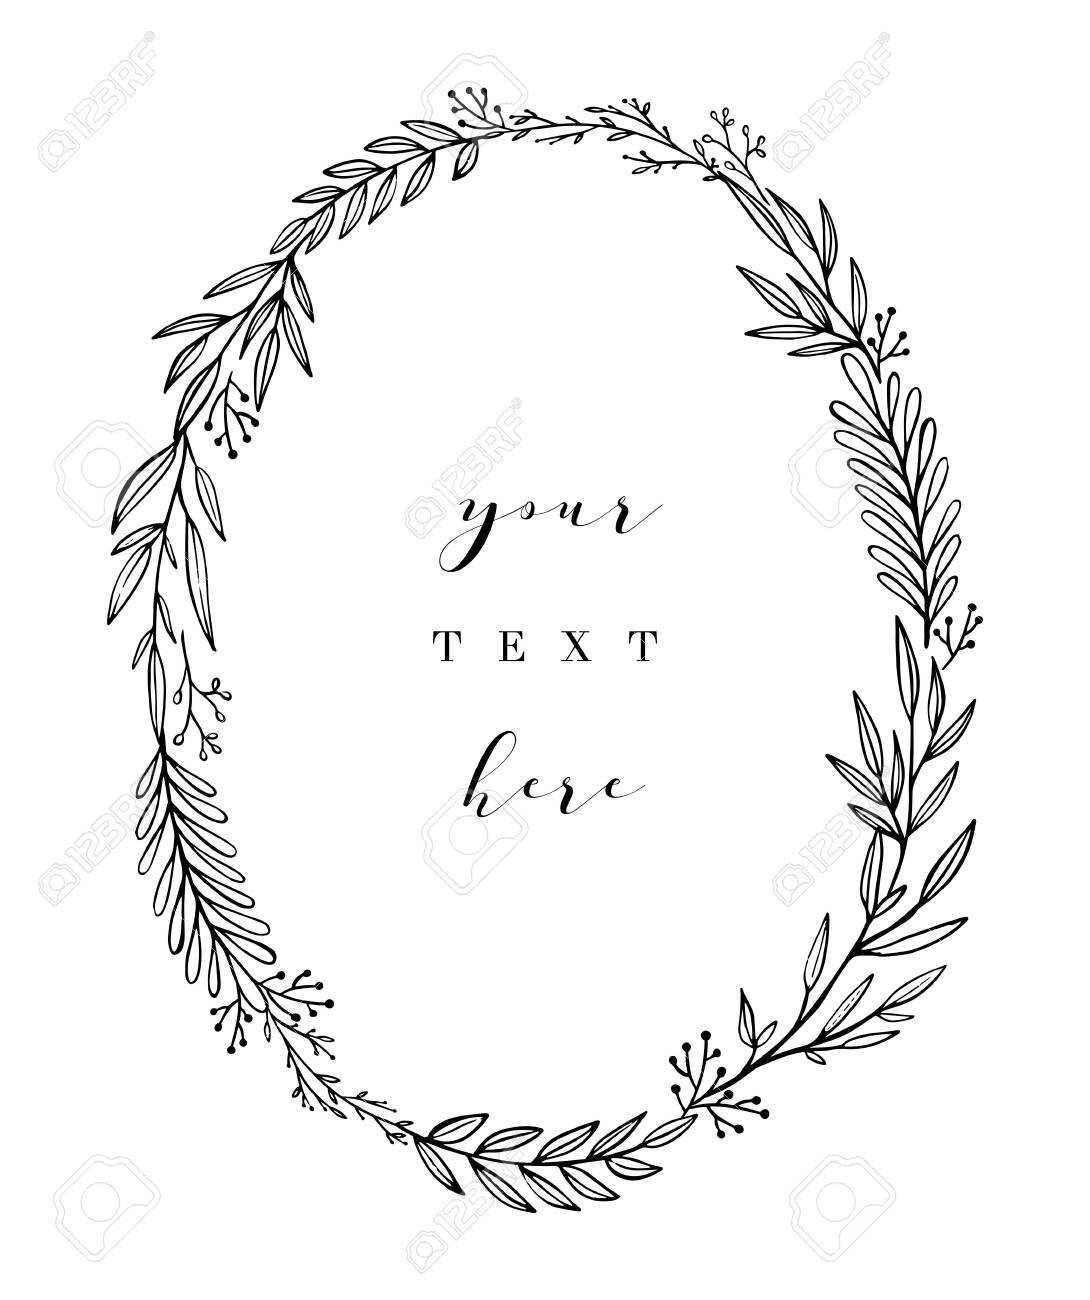 Hand drawn wreath. Vector floral design elements for invitations, greeting cards, scrapbooking, posters. Vintage decorative laurel, oval frame made of twigs, leaves and branches. - 129294517